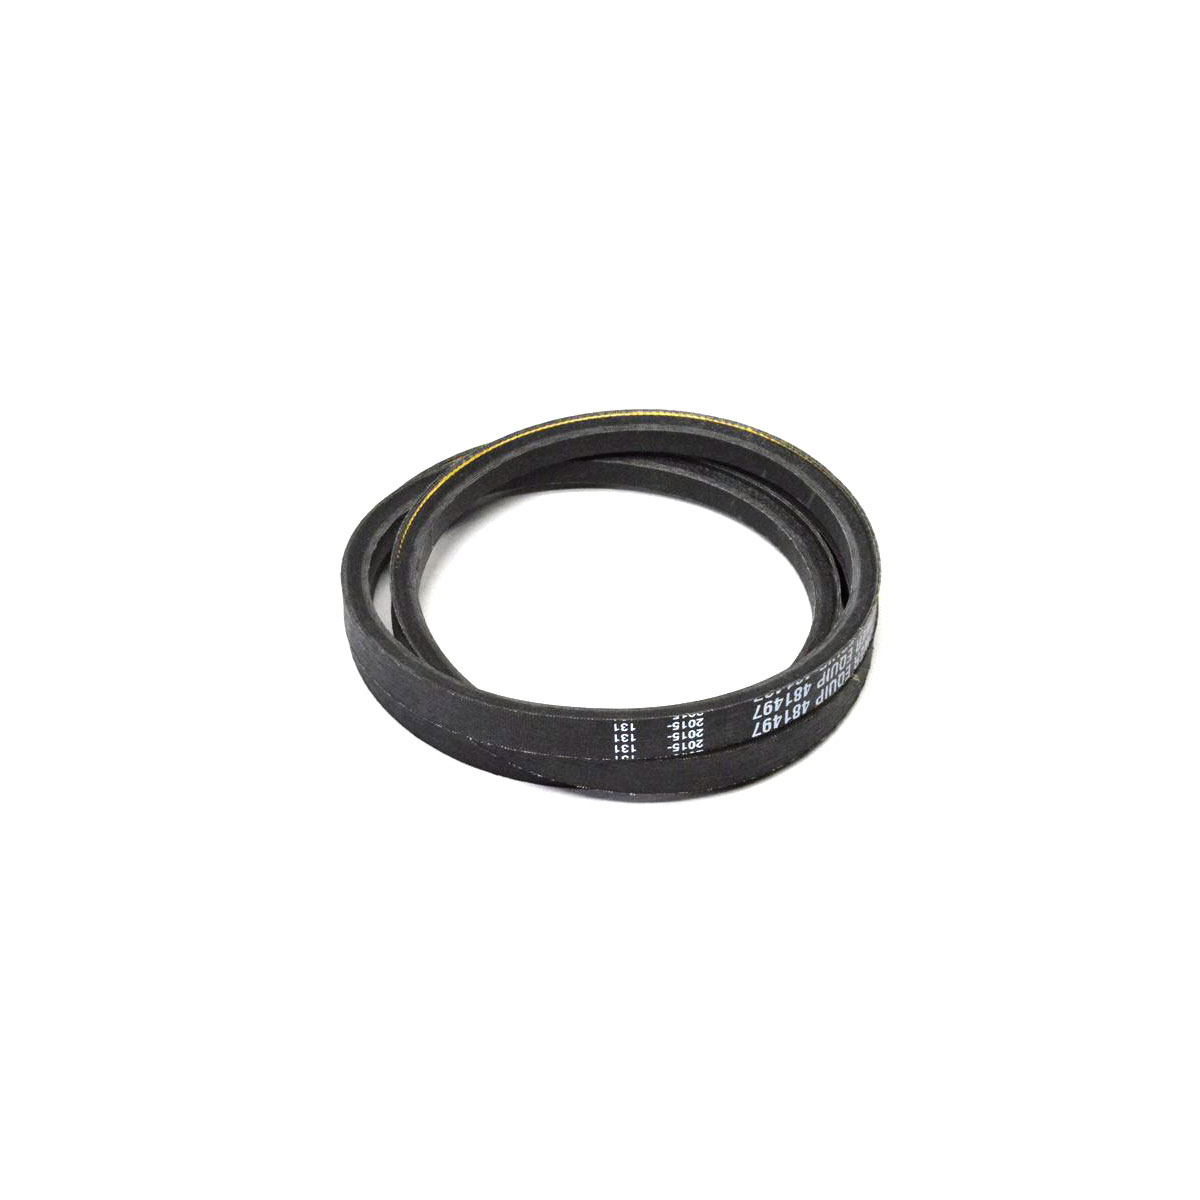 Scag Main Drive Belt 481497